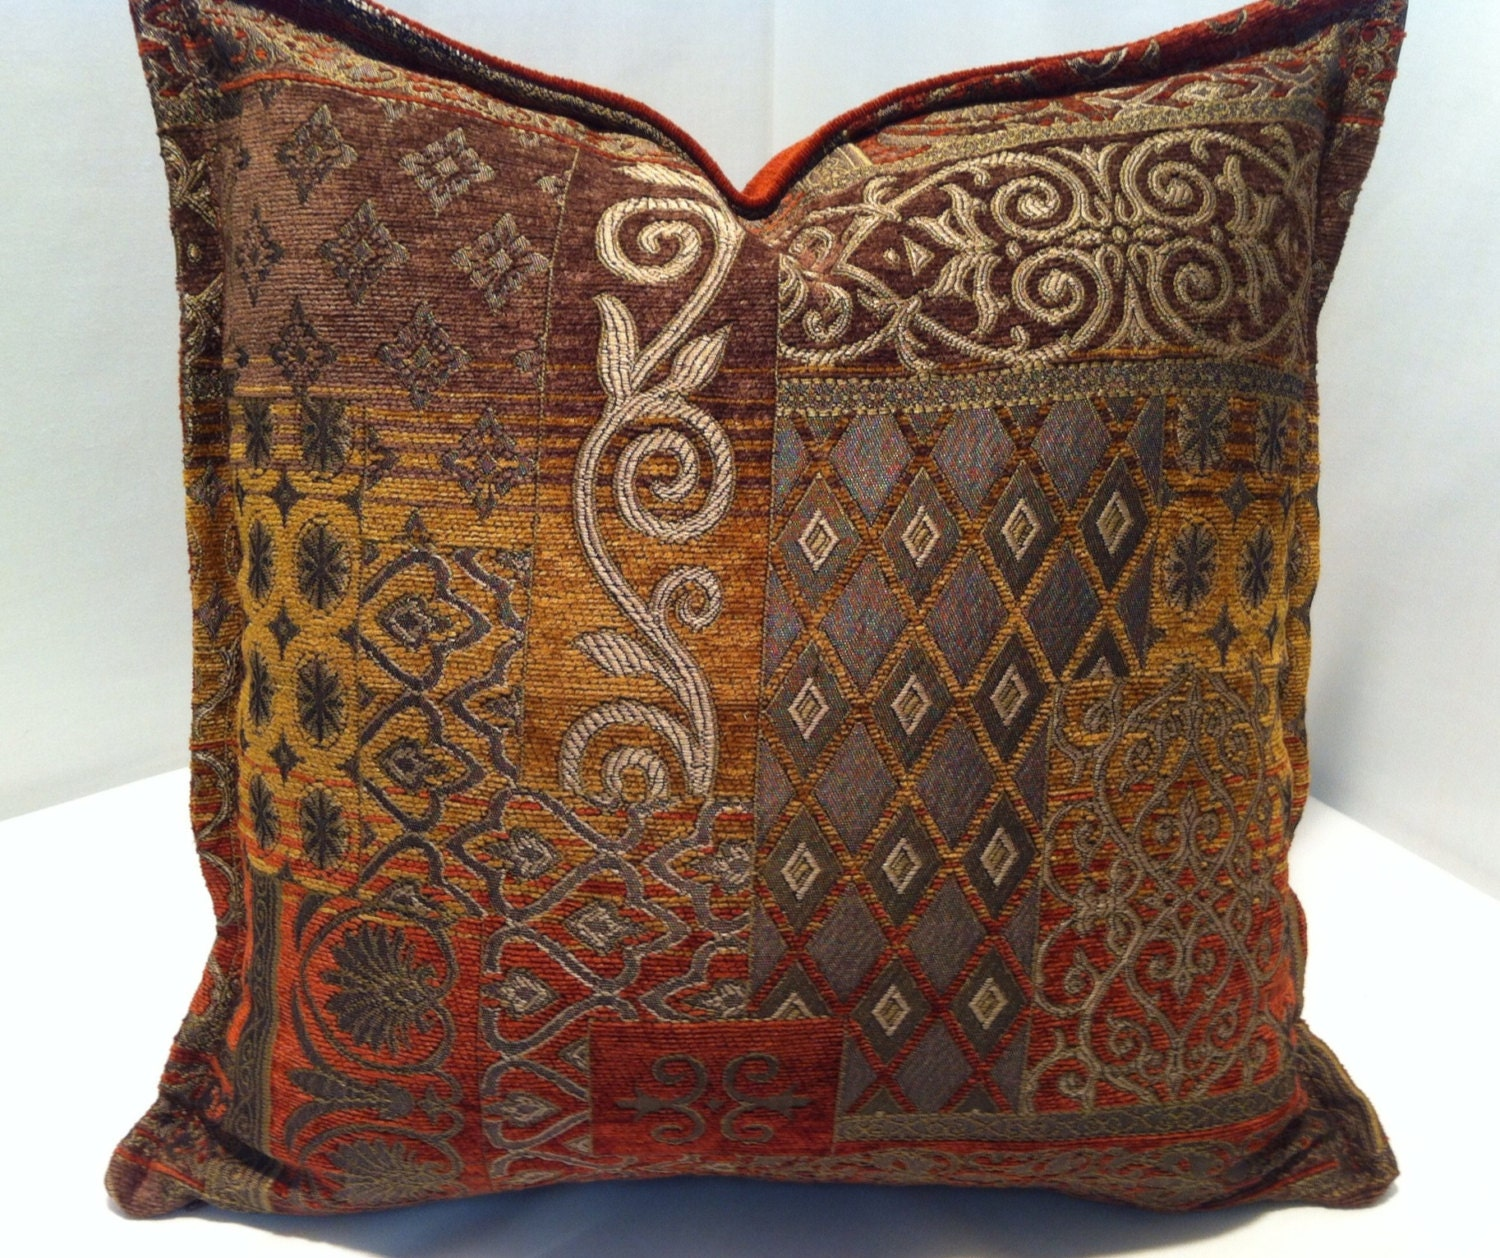 Chenille Throw Pillow Covers : 16 inch Decorative Chenille Throw Pillow Cover in Burnt Orange